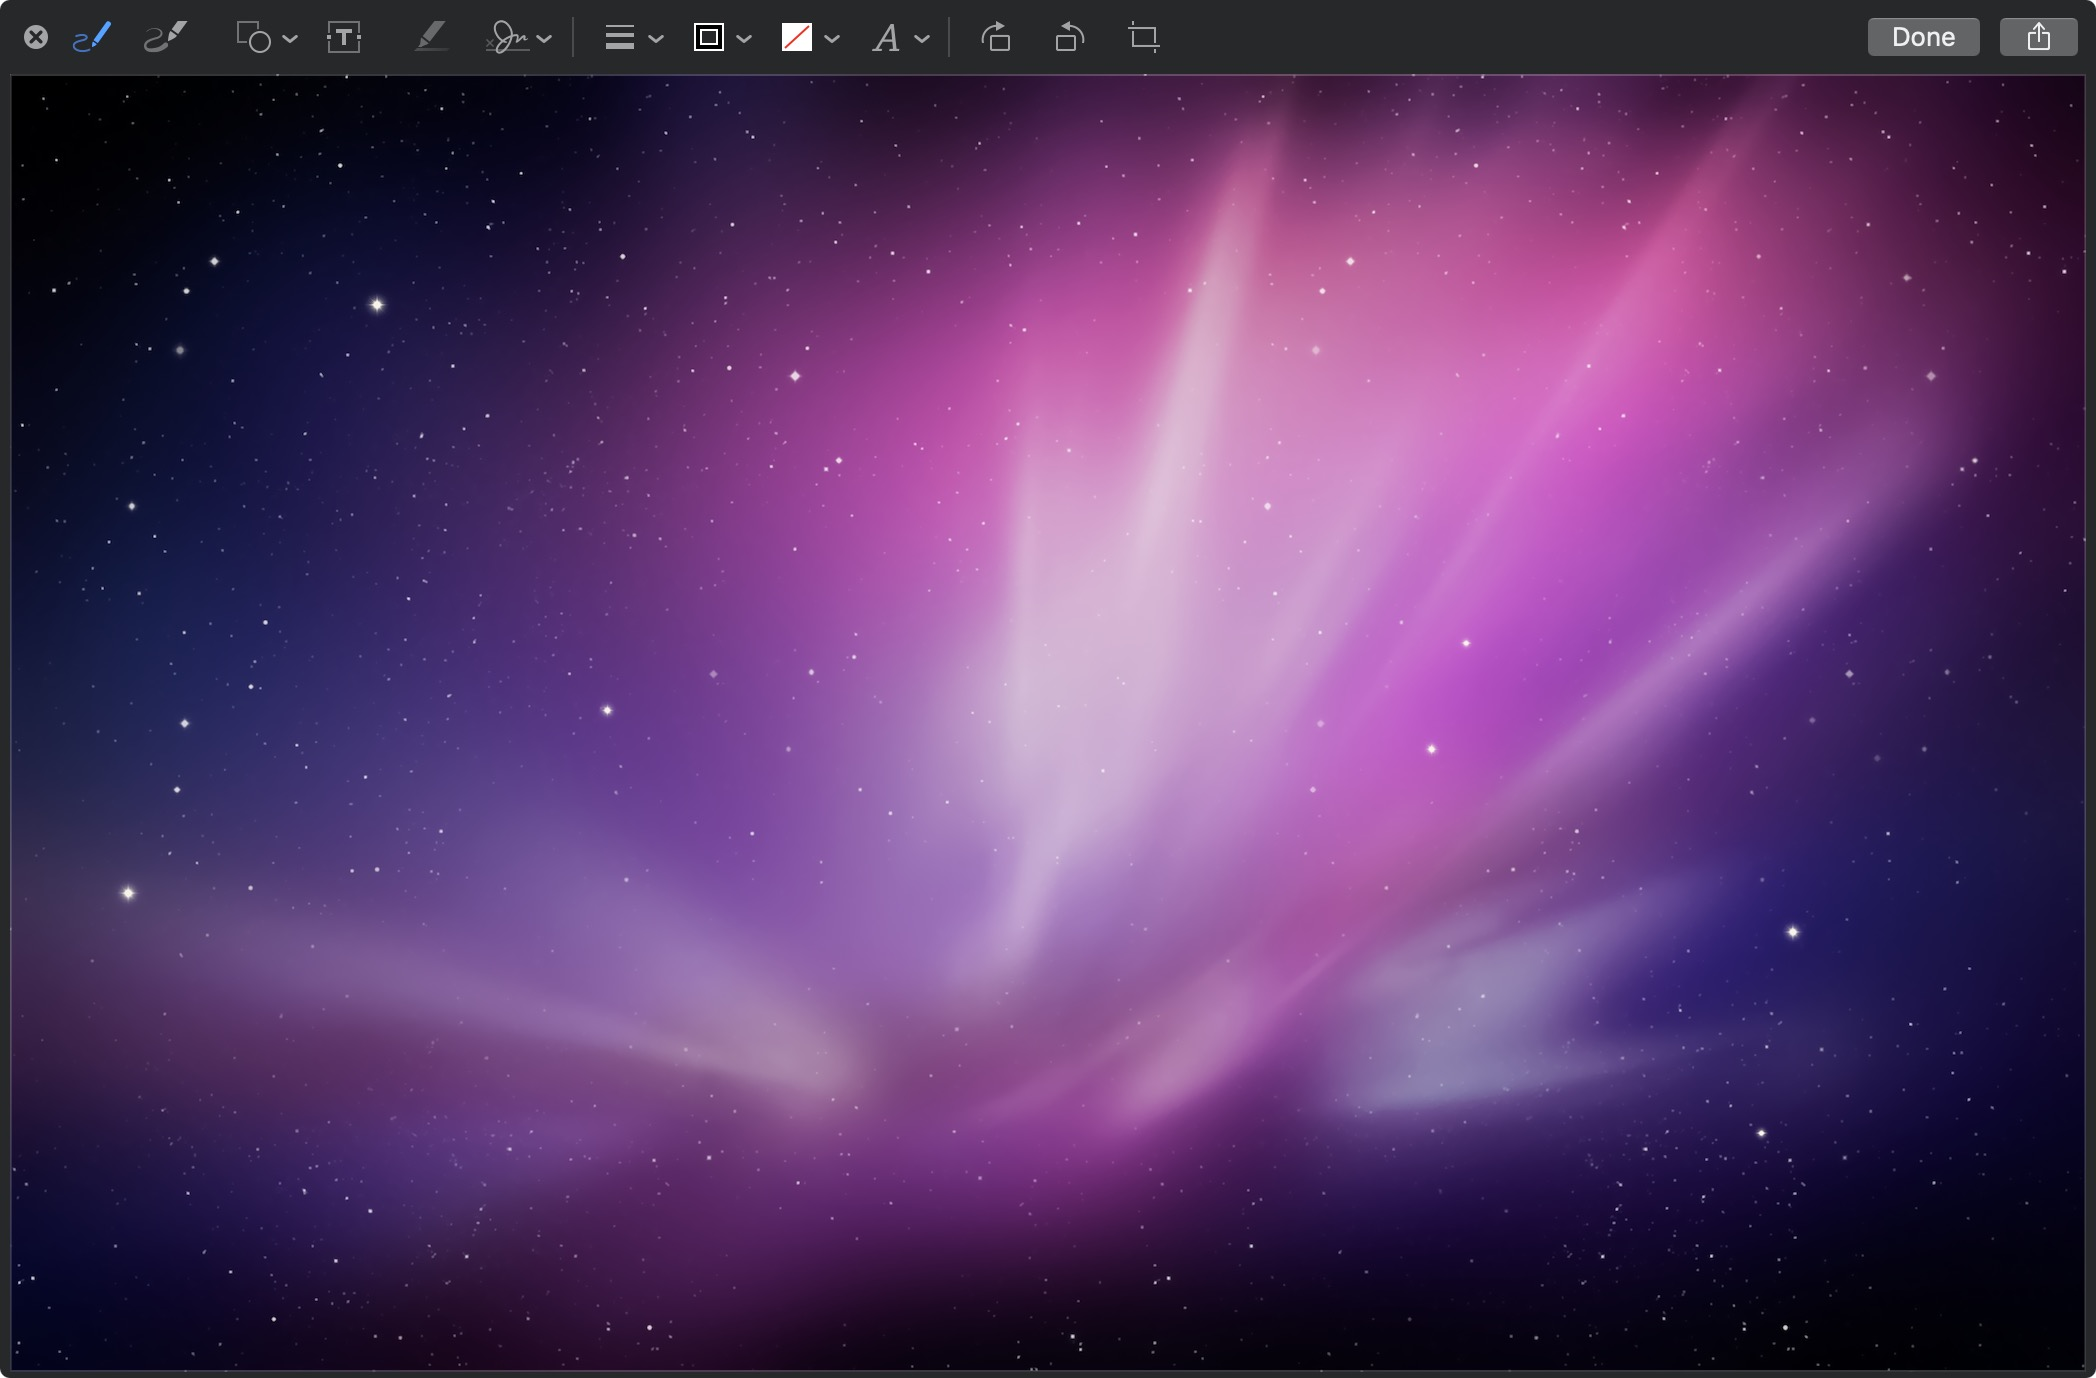 Mojave's Quick Look can rotate or draw on images, insert text into or sign PDFs, and more without making you open the file.